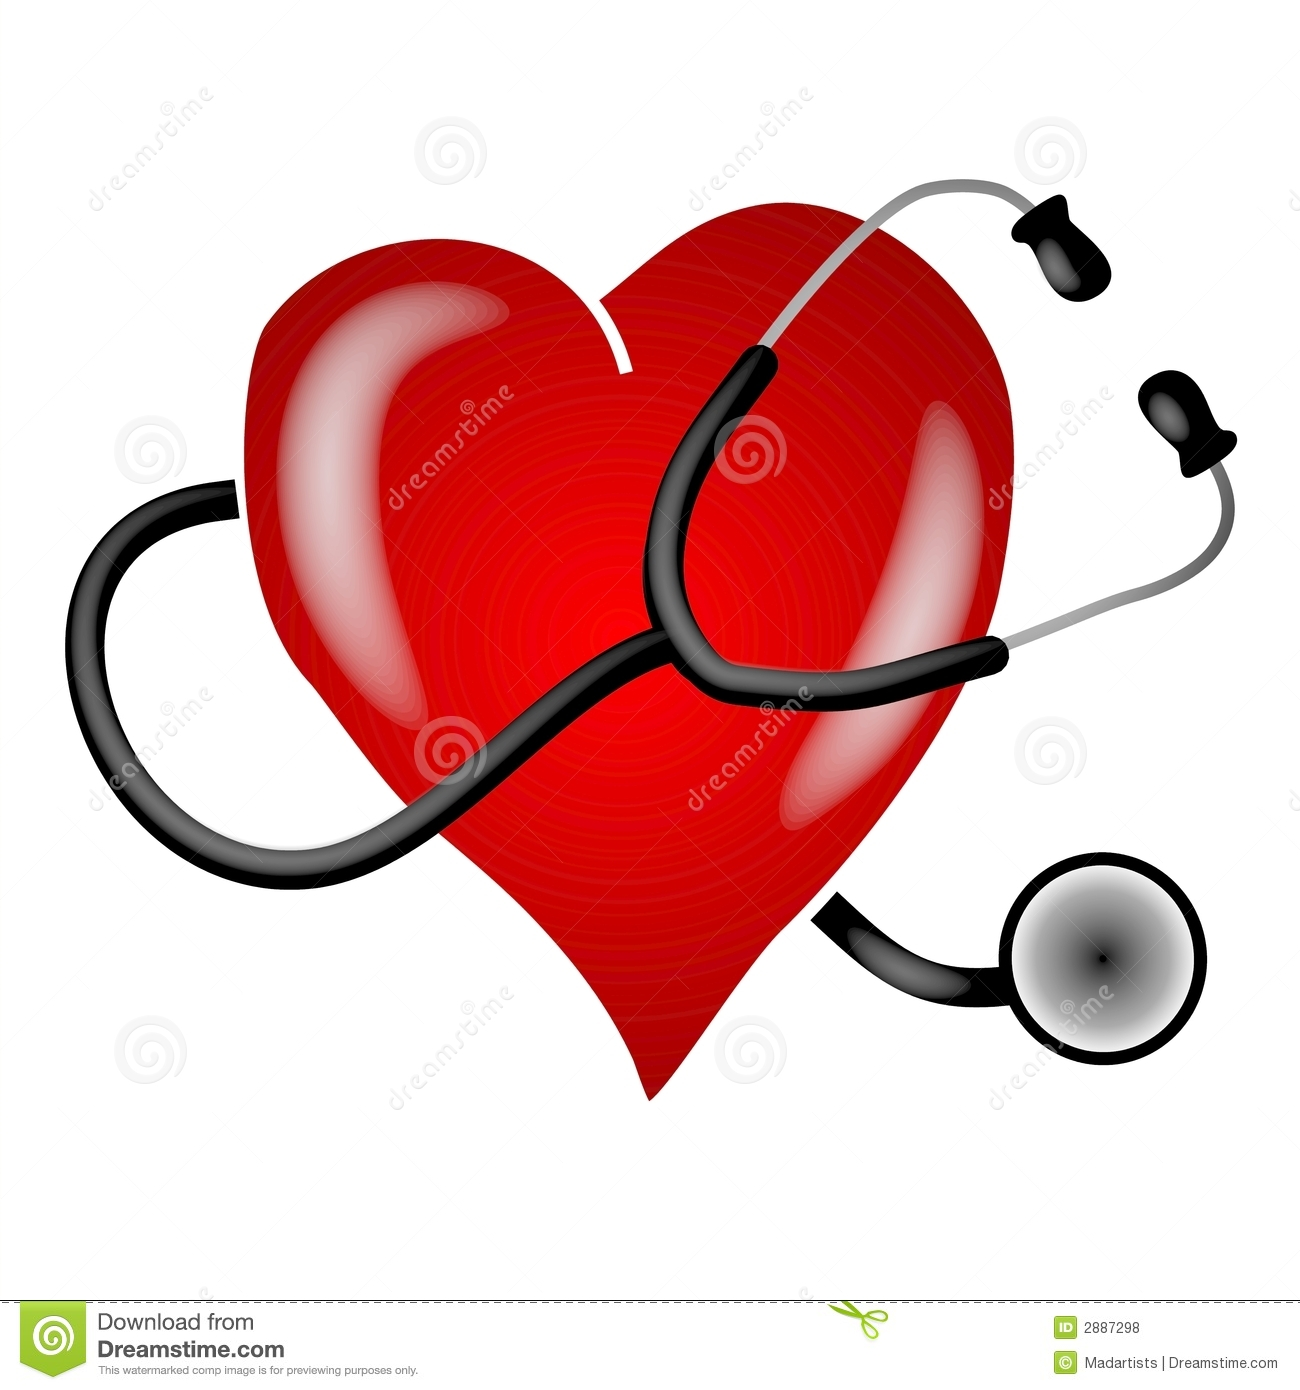 hight resolution of a clip art illustration of a stethoscope on a white isolated background wrapped around a big red heart to depict heart health and awareness topics